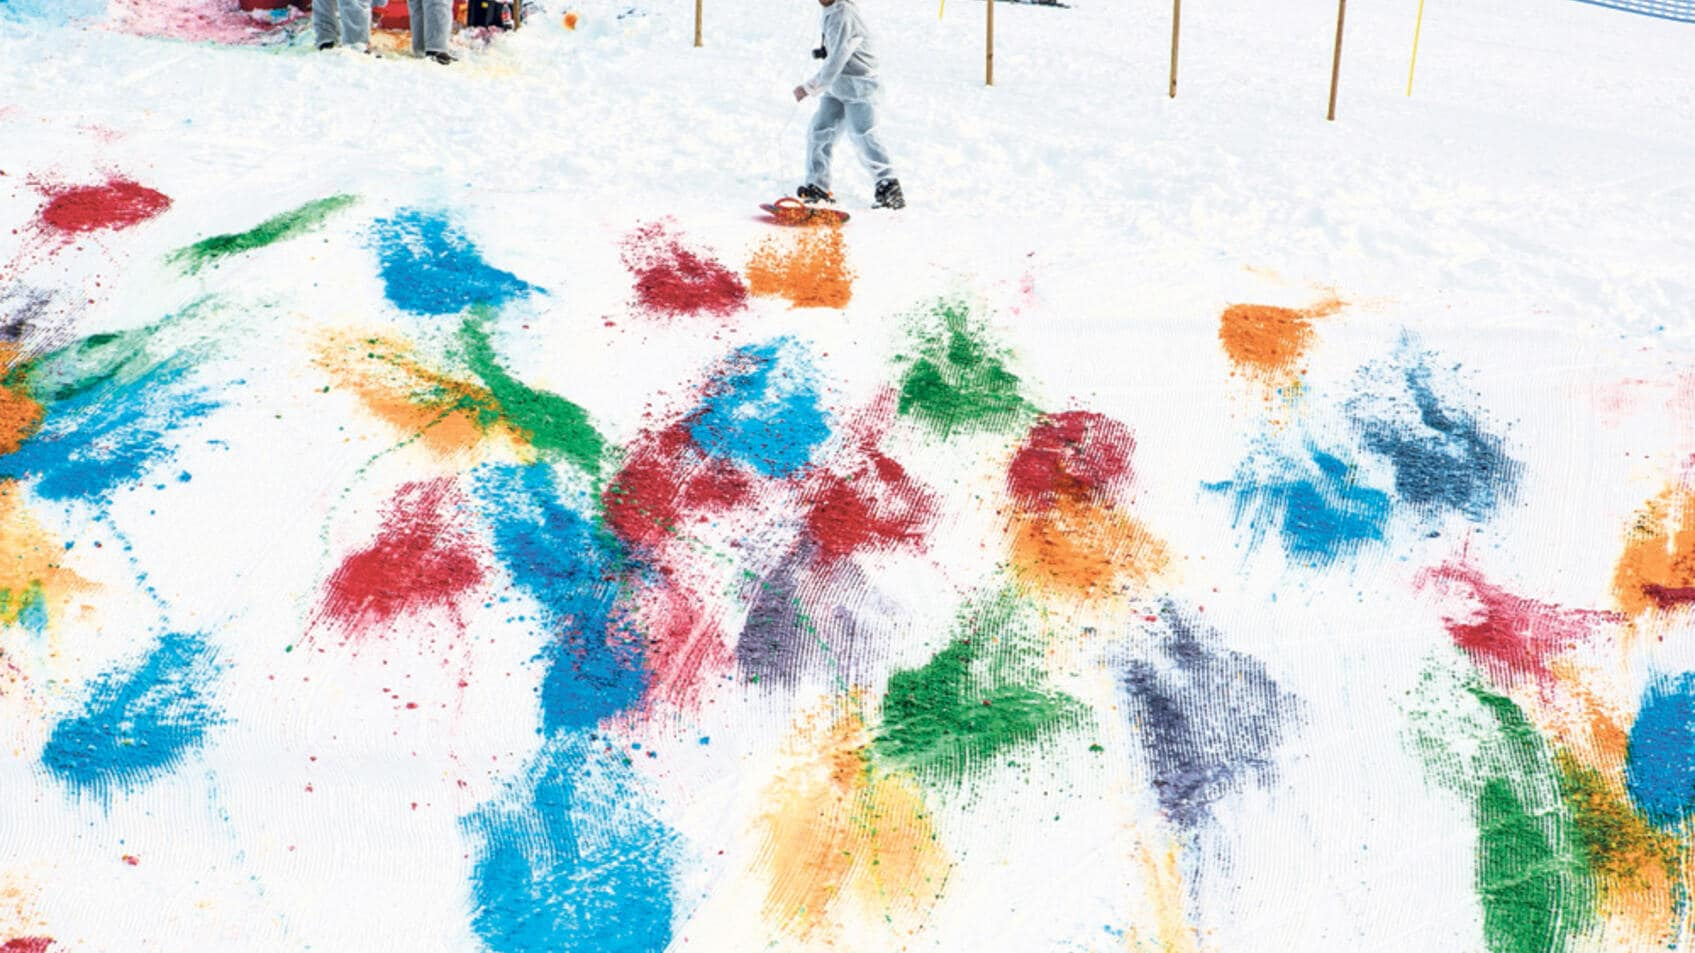 Olaf Breuning: «Snow Drawing», Gstaad, 2014.